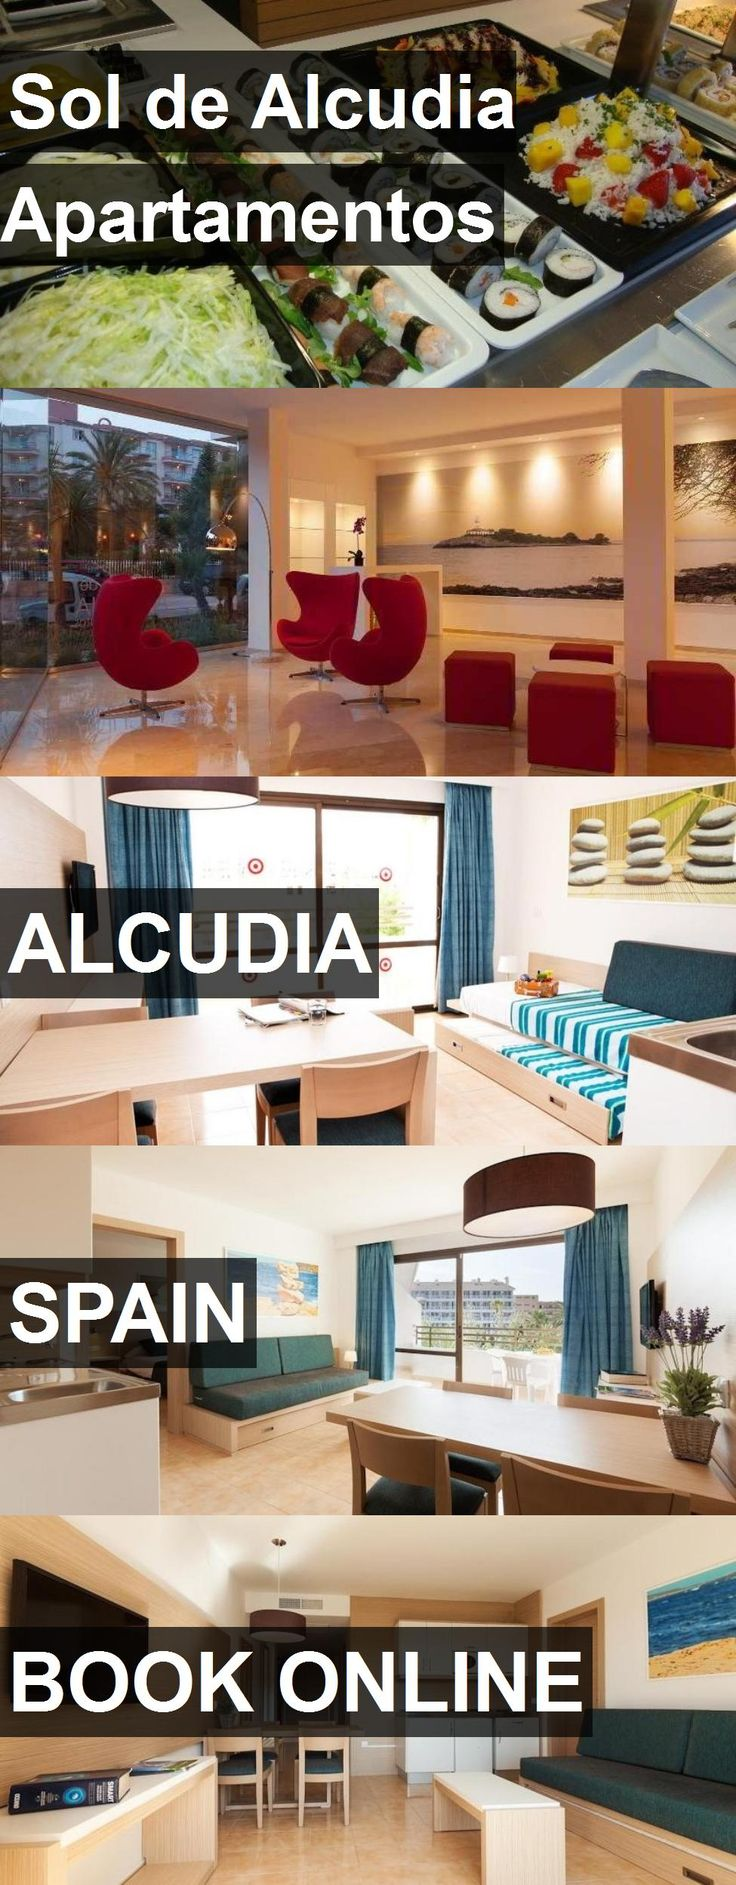 Hotel Sol de Alcudia Apartamentos in Alcudia, Spain. For more information, photos, reviews and best prices please follow the link. #Spain #Alcudia #SoldeAlcudiaApartamentos #hotel #travel #vacation